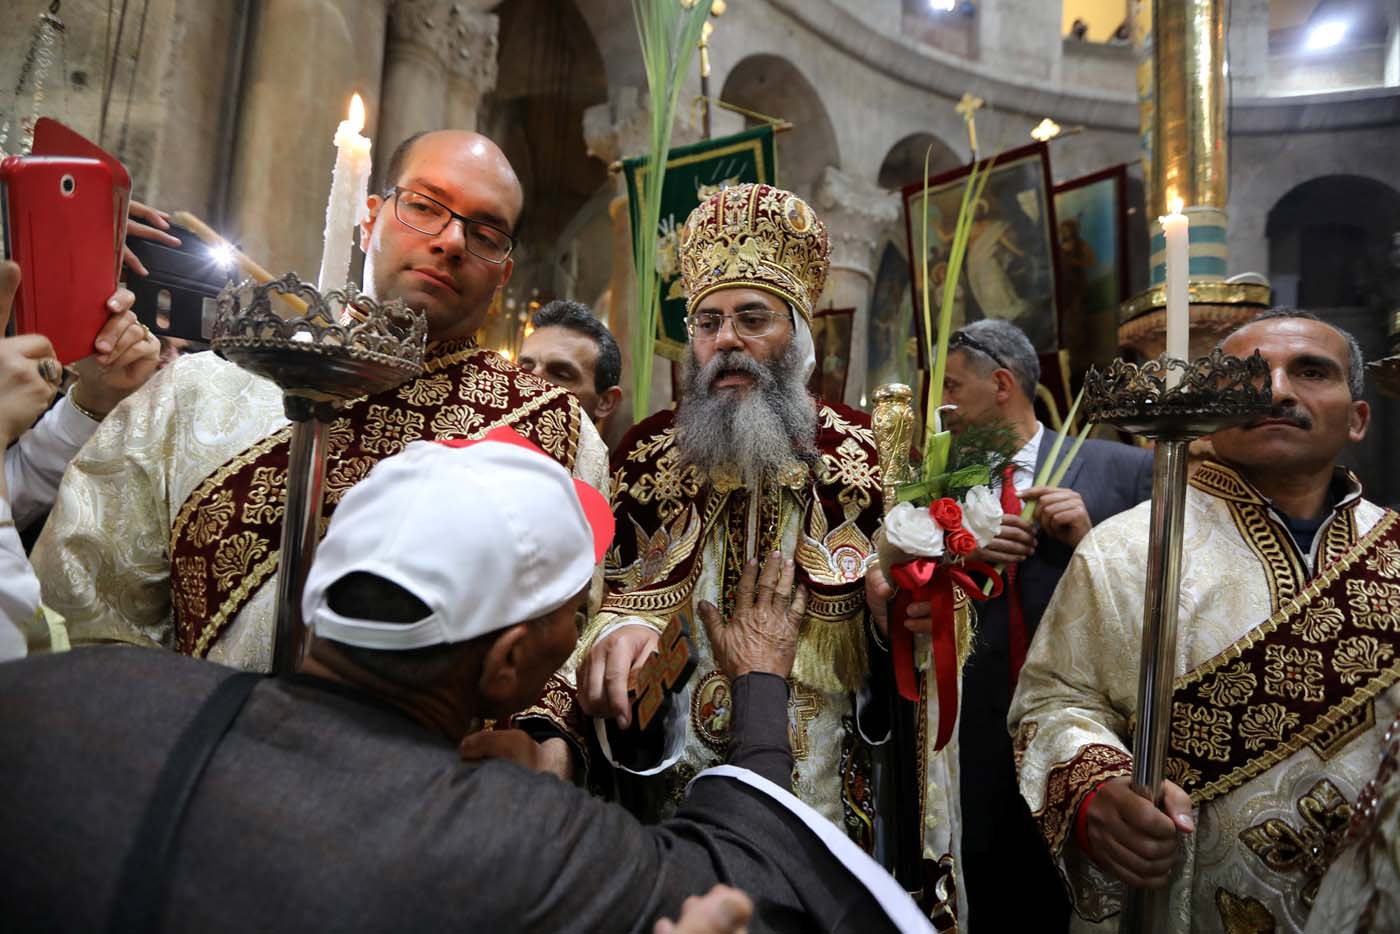 A man touches the Coptic Orthodox Bishop Anthony, during a Palm Sunday ceremony in the Church of the Holy Sepulchre in Jerusalem's Old City April 9, 2017. REUTERS/Ammar Awad